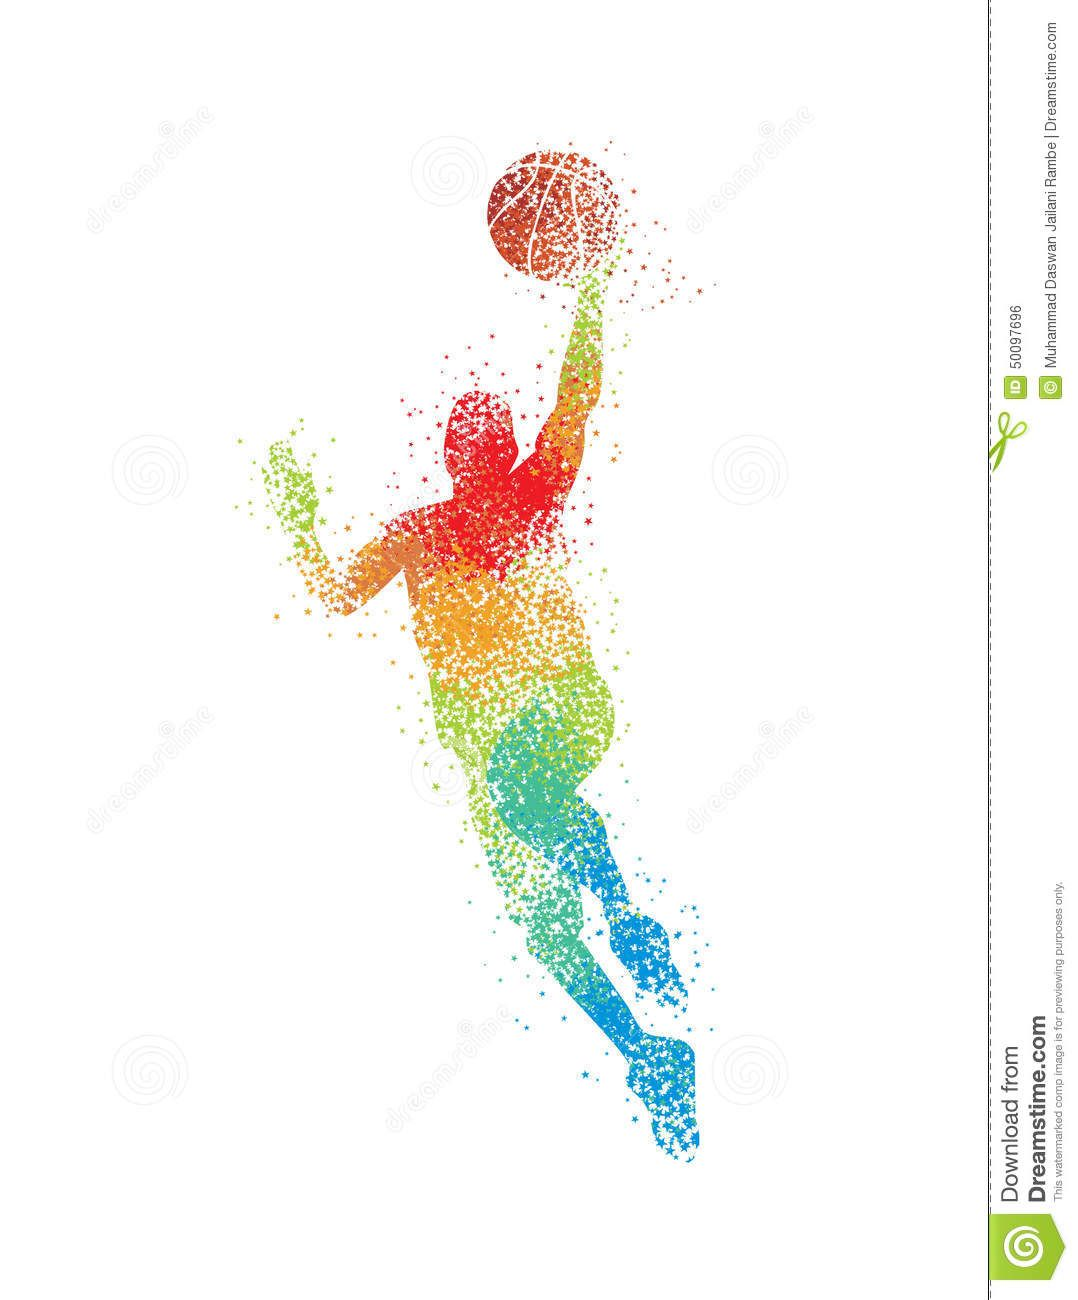 Royalty Free Stock Image: Basketball Art 2. Image: 50097696